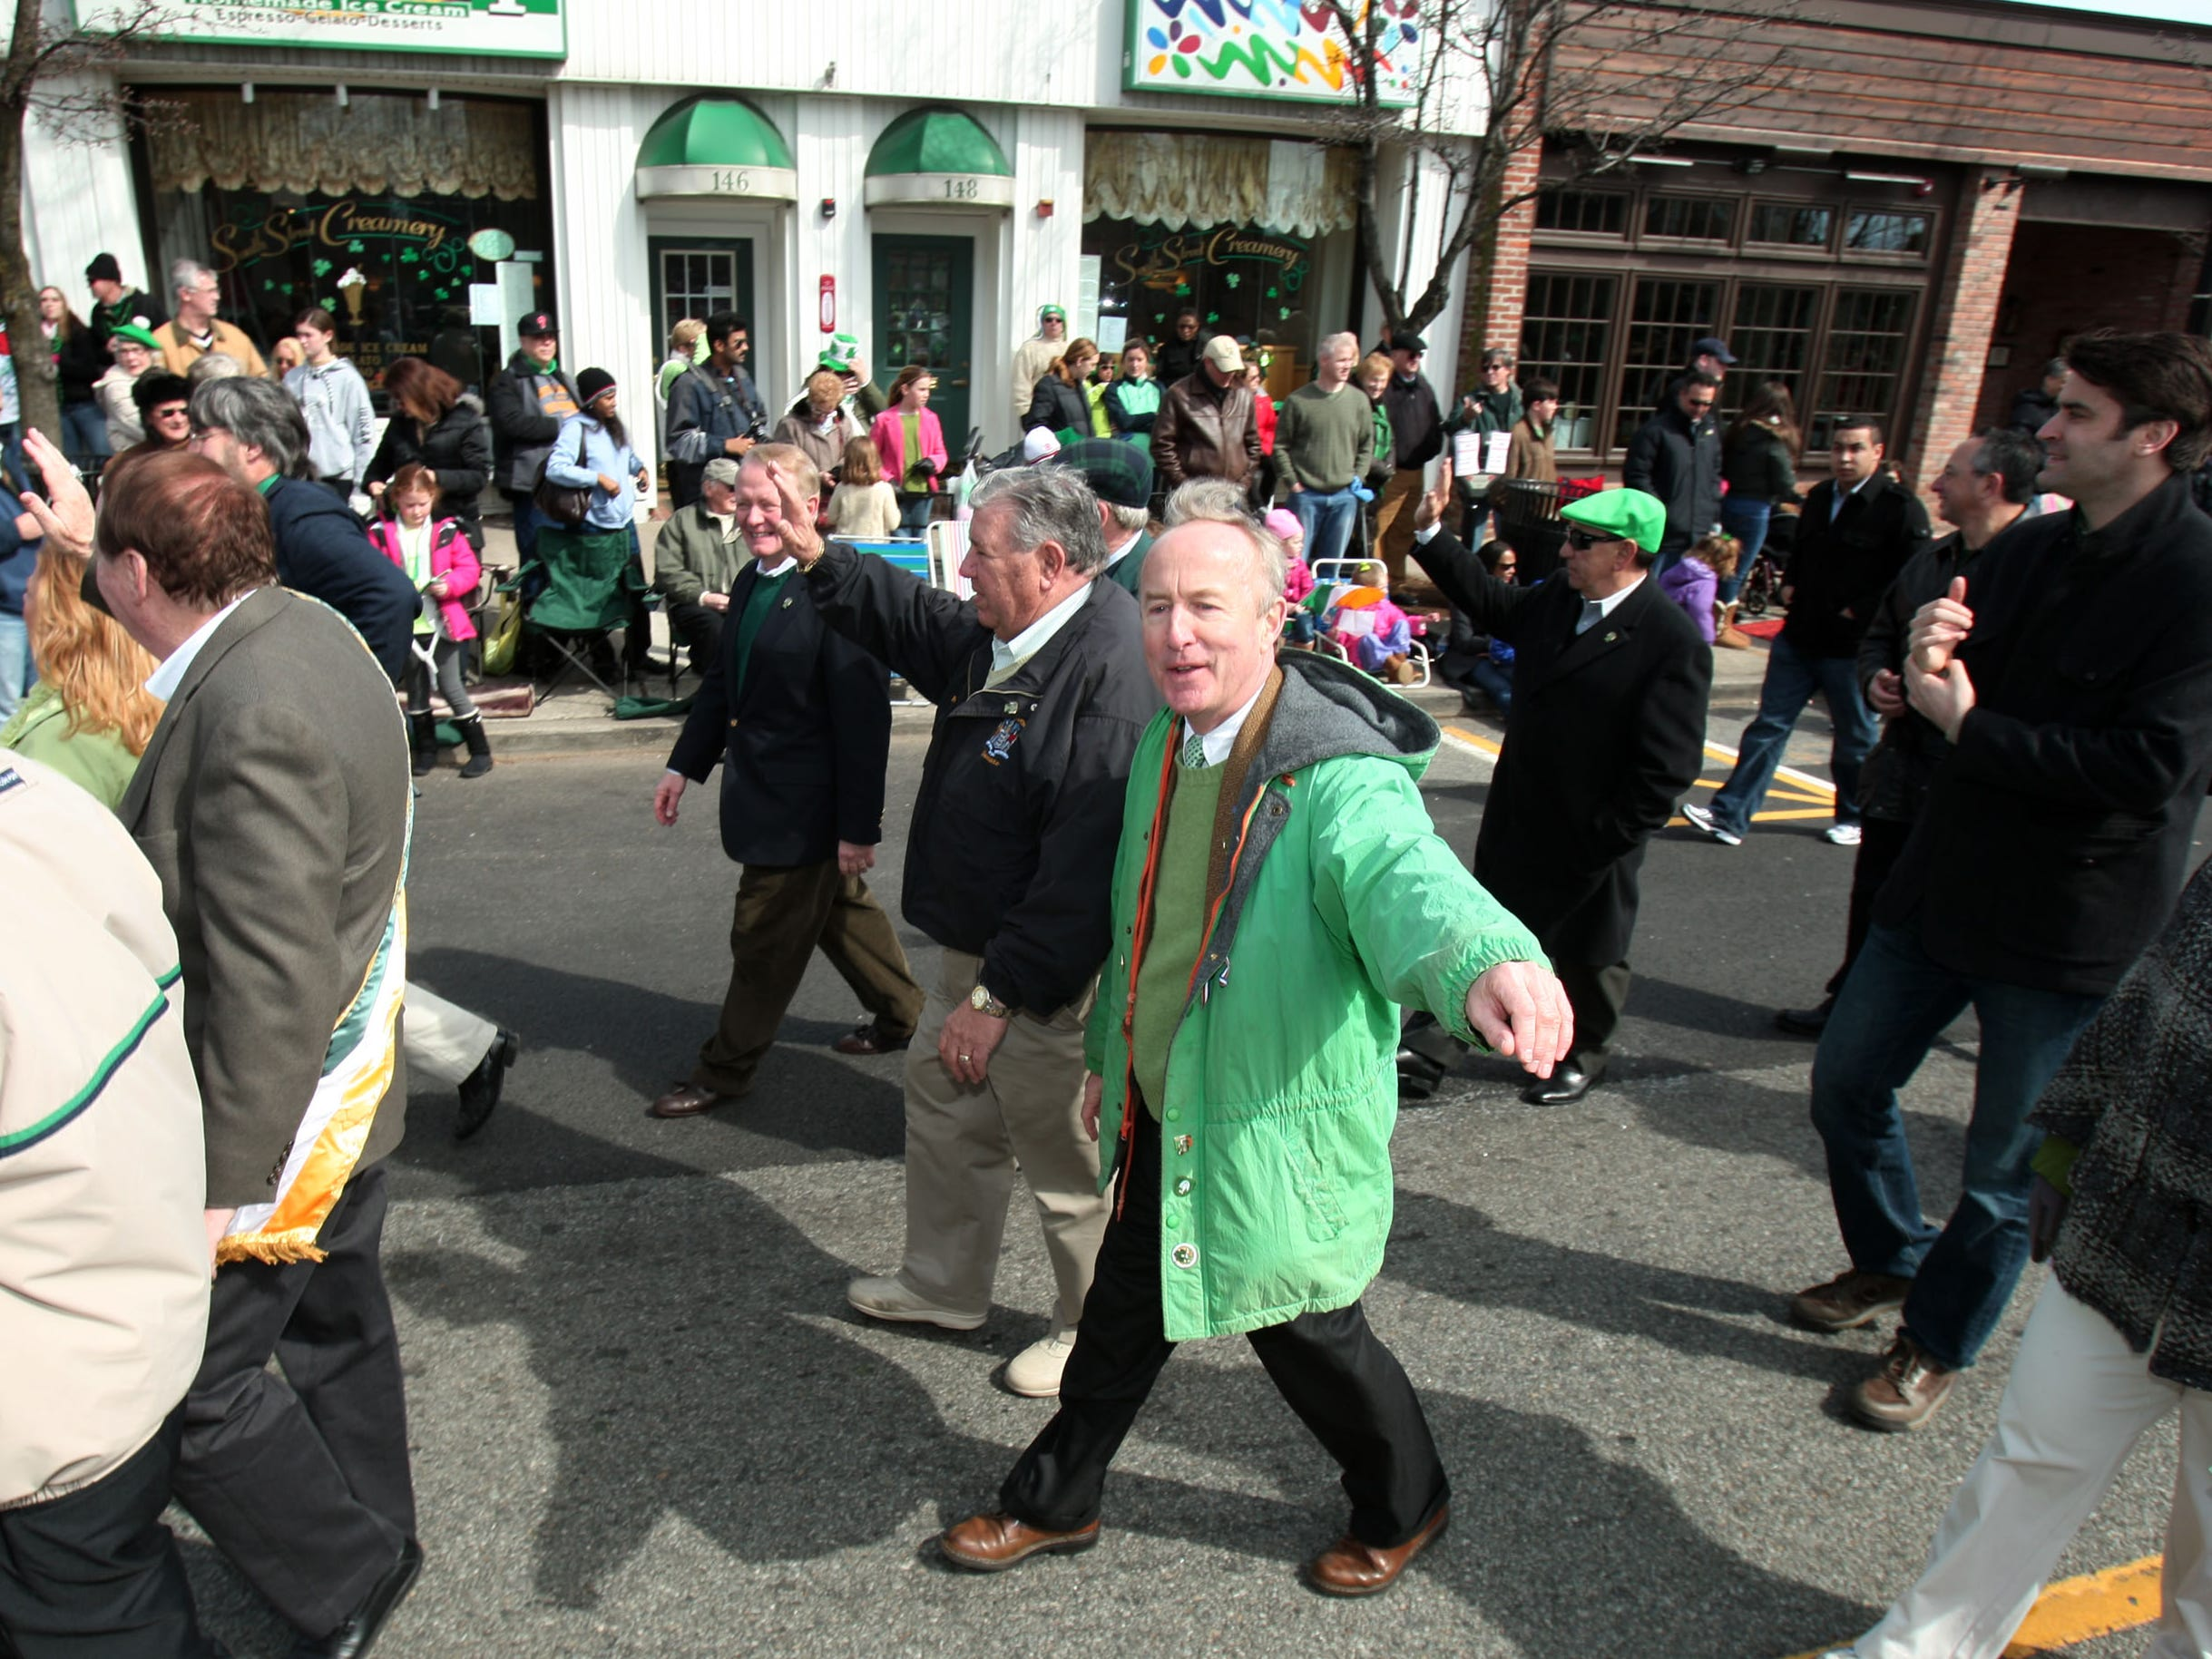 Rep. Rodney Frelinghuysen, R-N.J., wears green for the day.